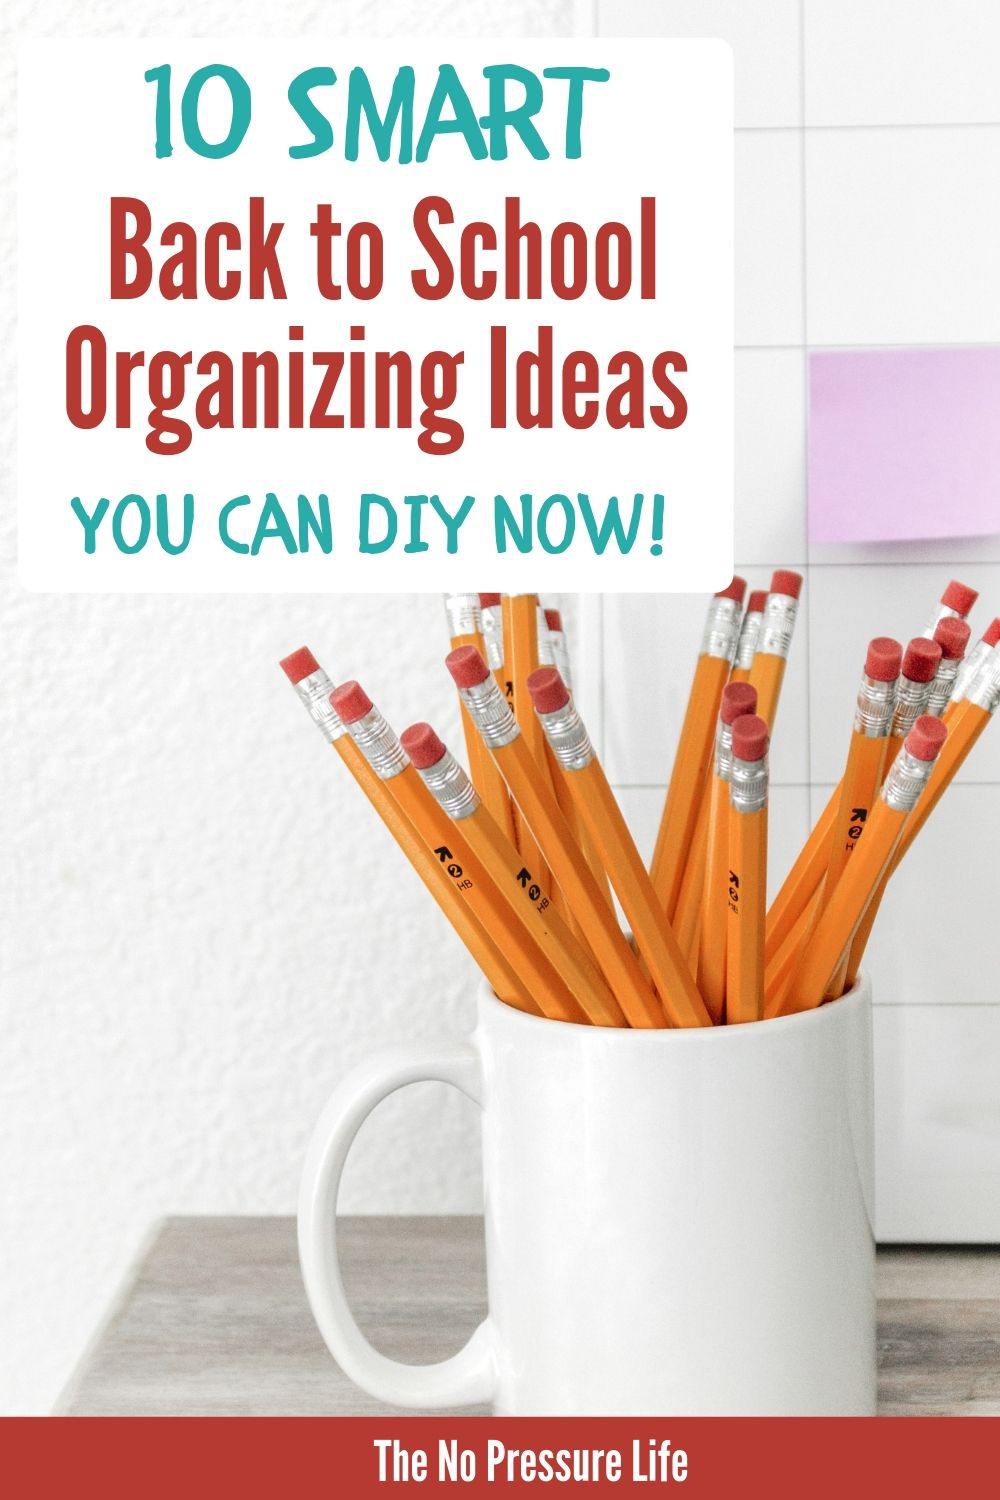 organizing ideas for back to school